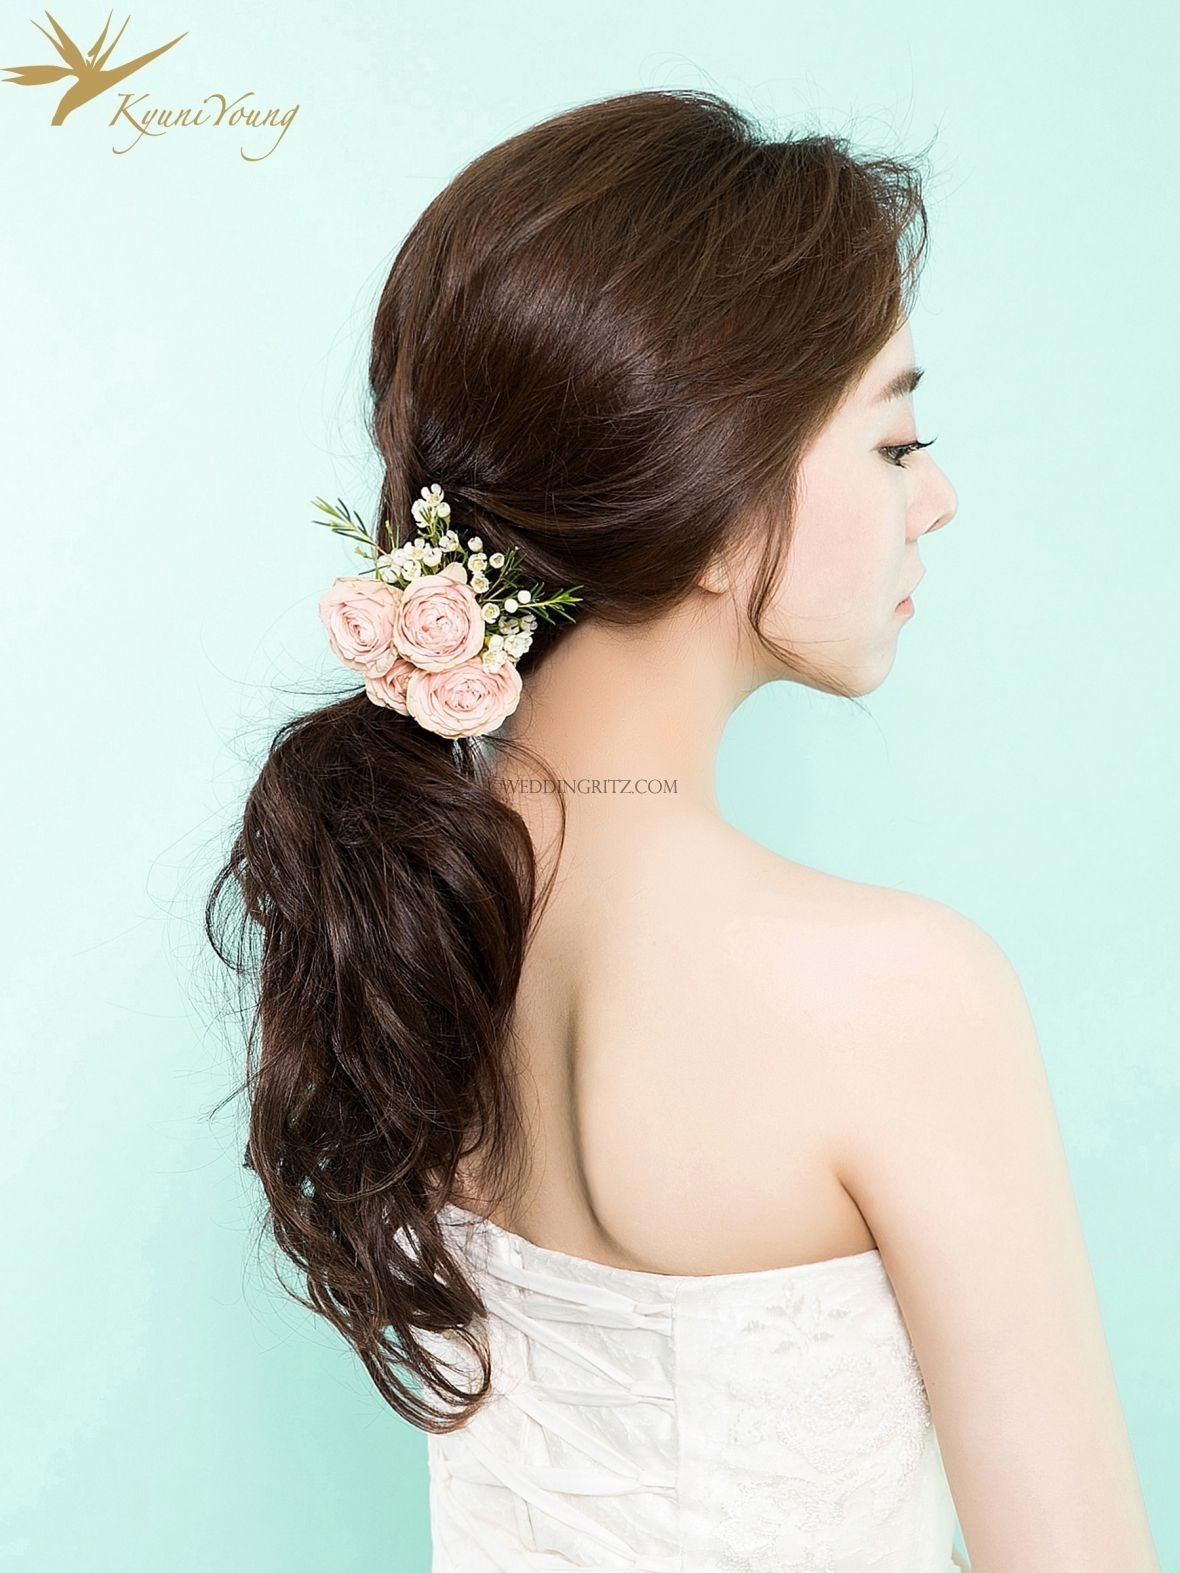 The Best Beautiful Gyuniyoung In Korea Hair Makeup Sample Pictures